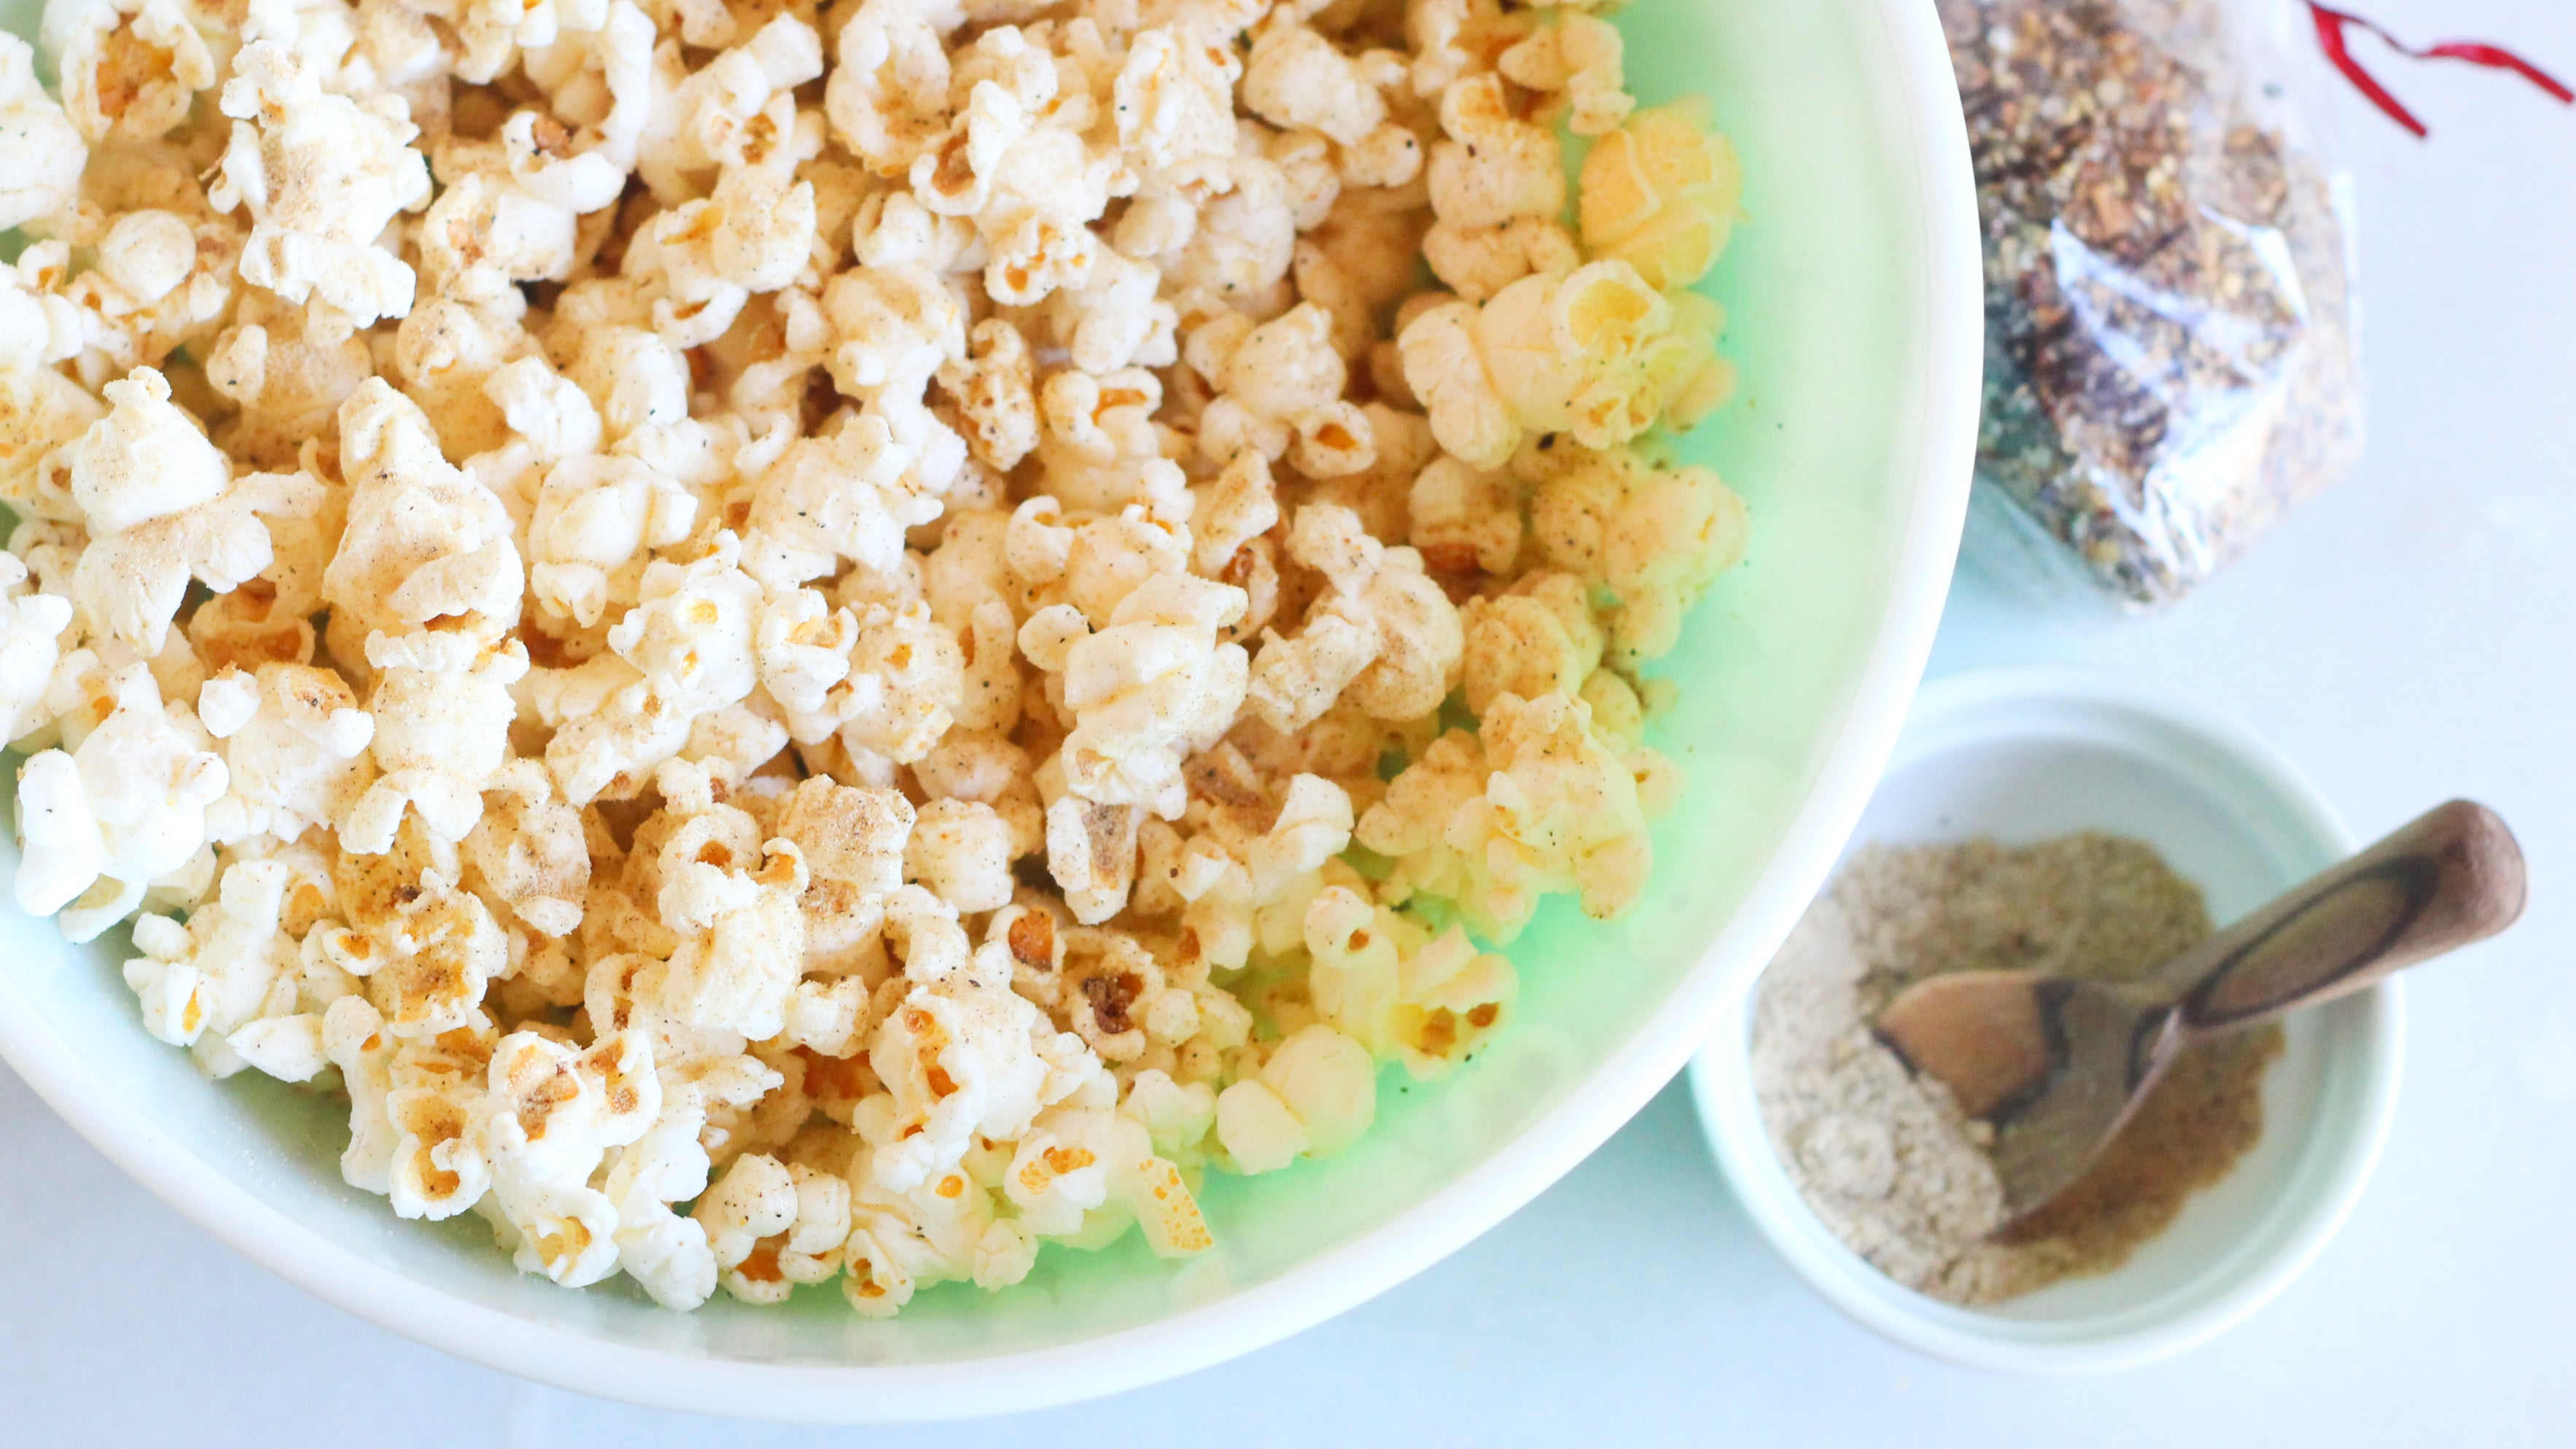 Pulverise Seasonings Before Sprinkling Them On Popcorn